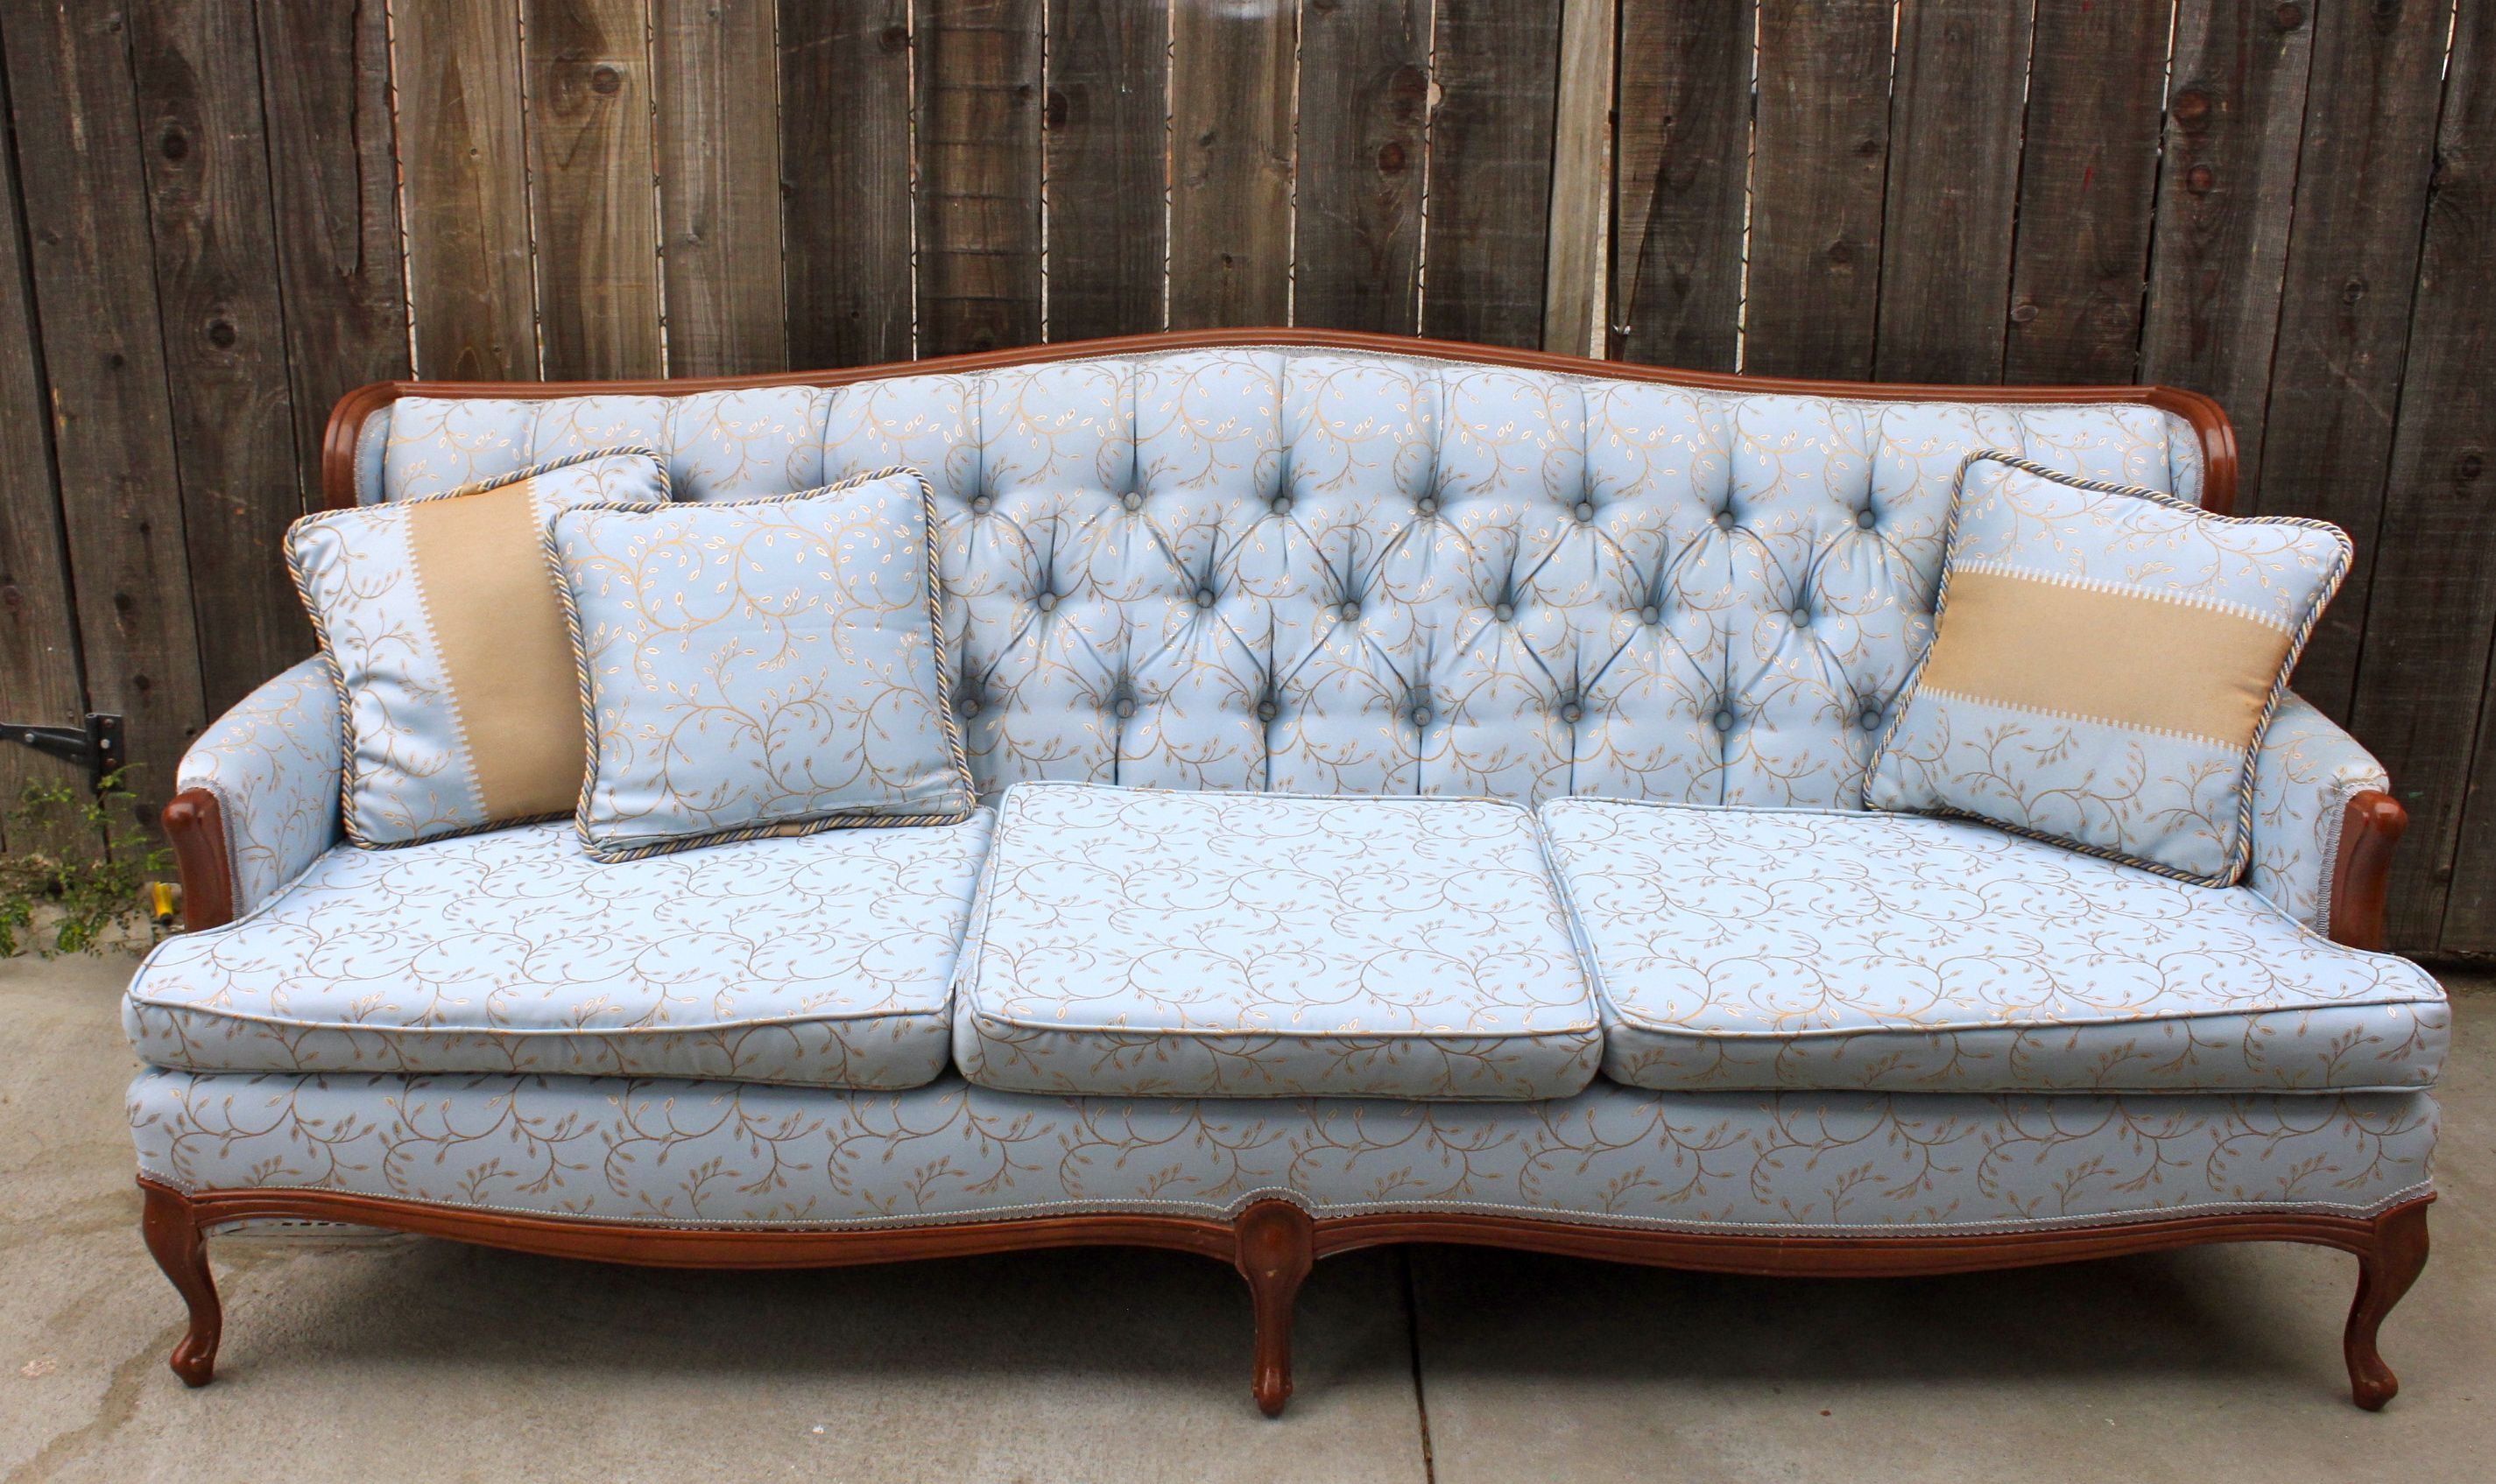 Vintage Couches Antique Couch Furniture Retro Cushions Pillows